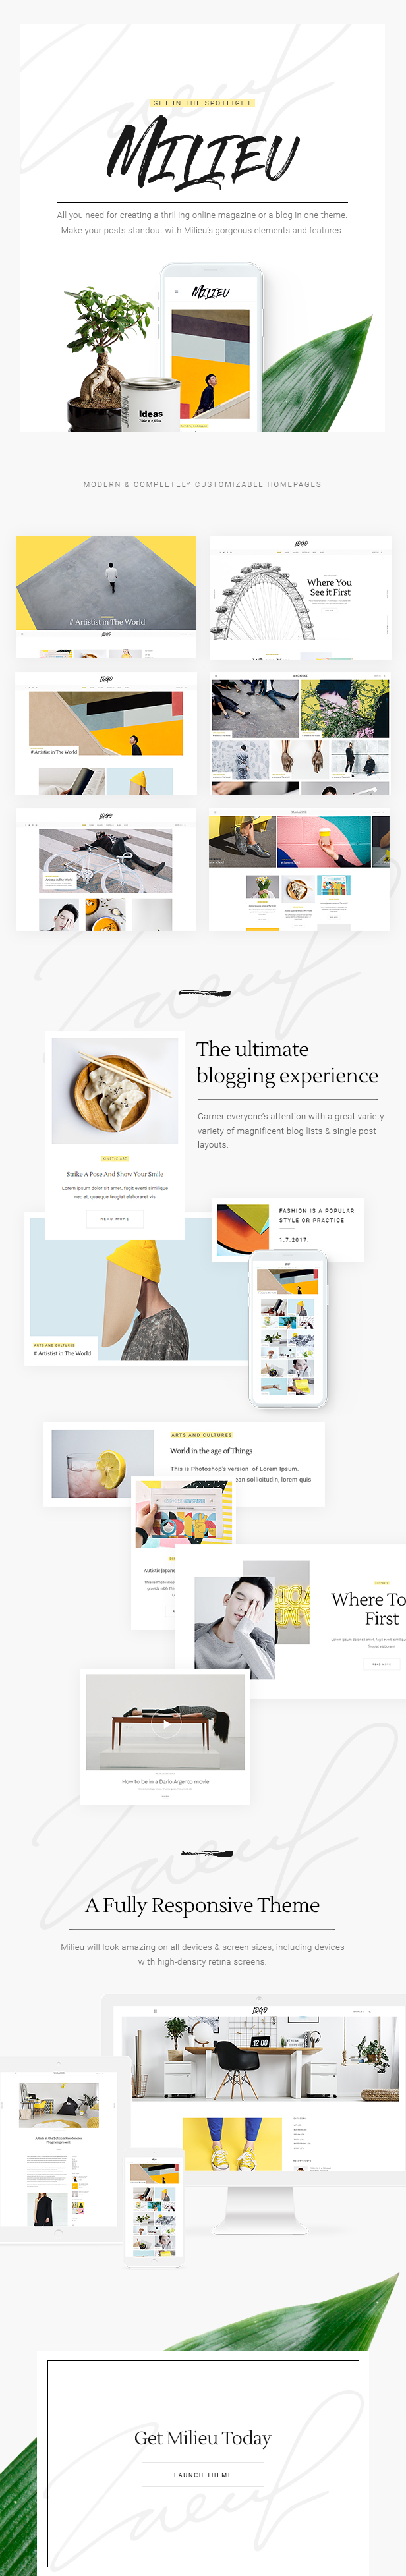 WordPress theme Milieu - Art, Style and Culture Magazine (News / Editorial)